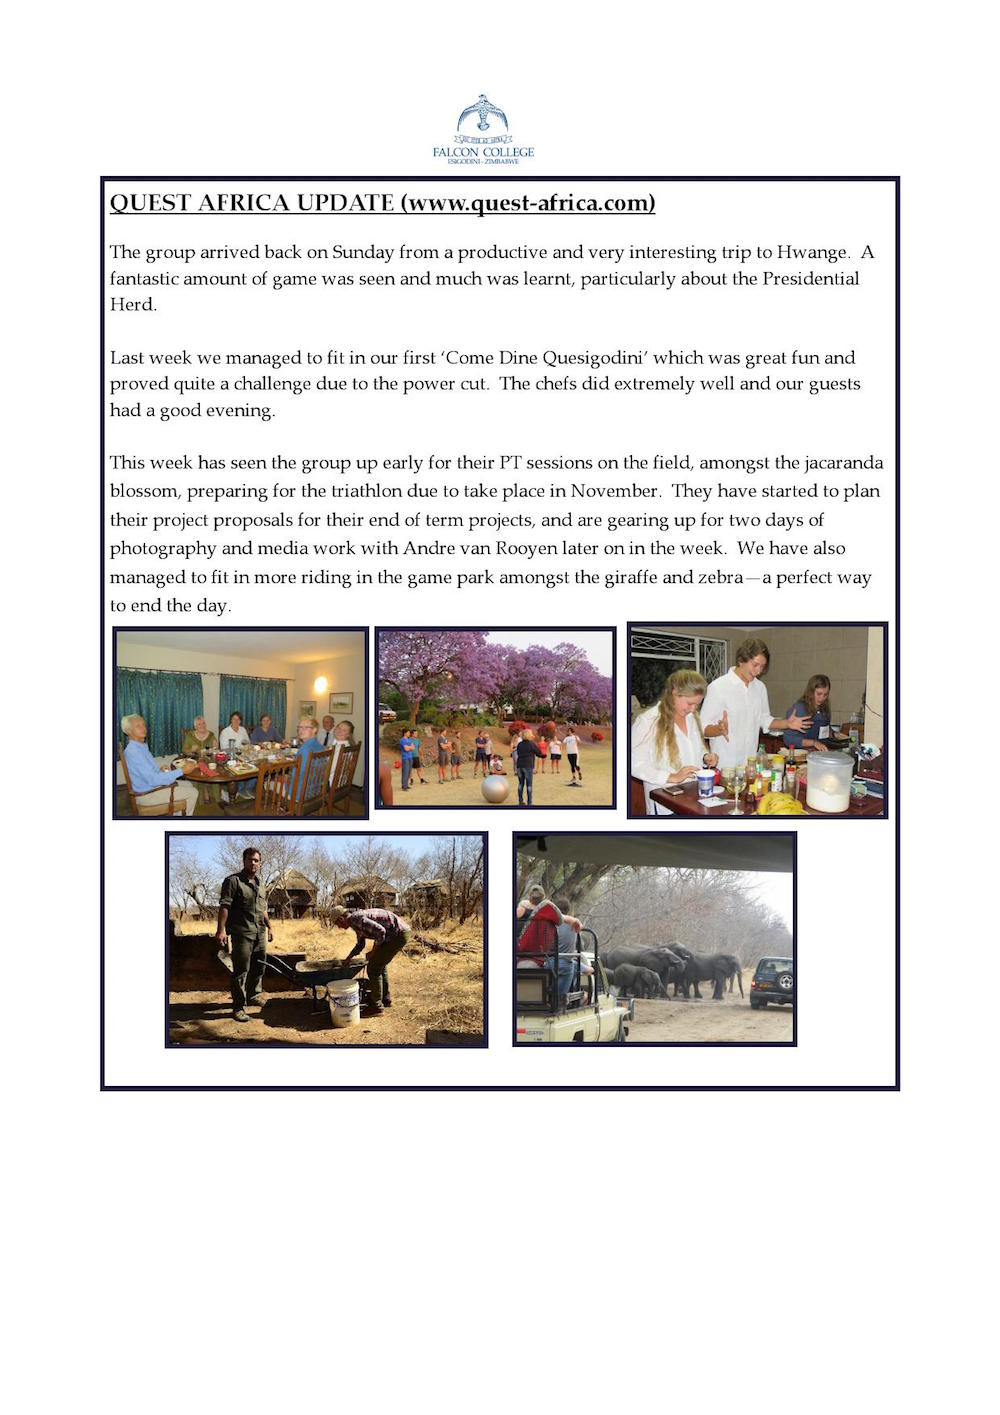 headmasters-newsletter-thursday-13th-october-2016-edited_000002